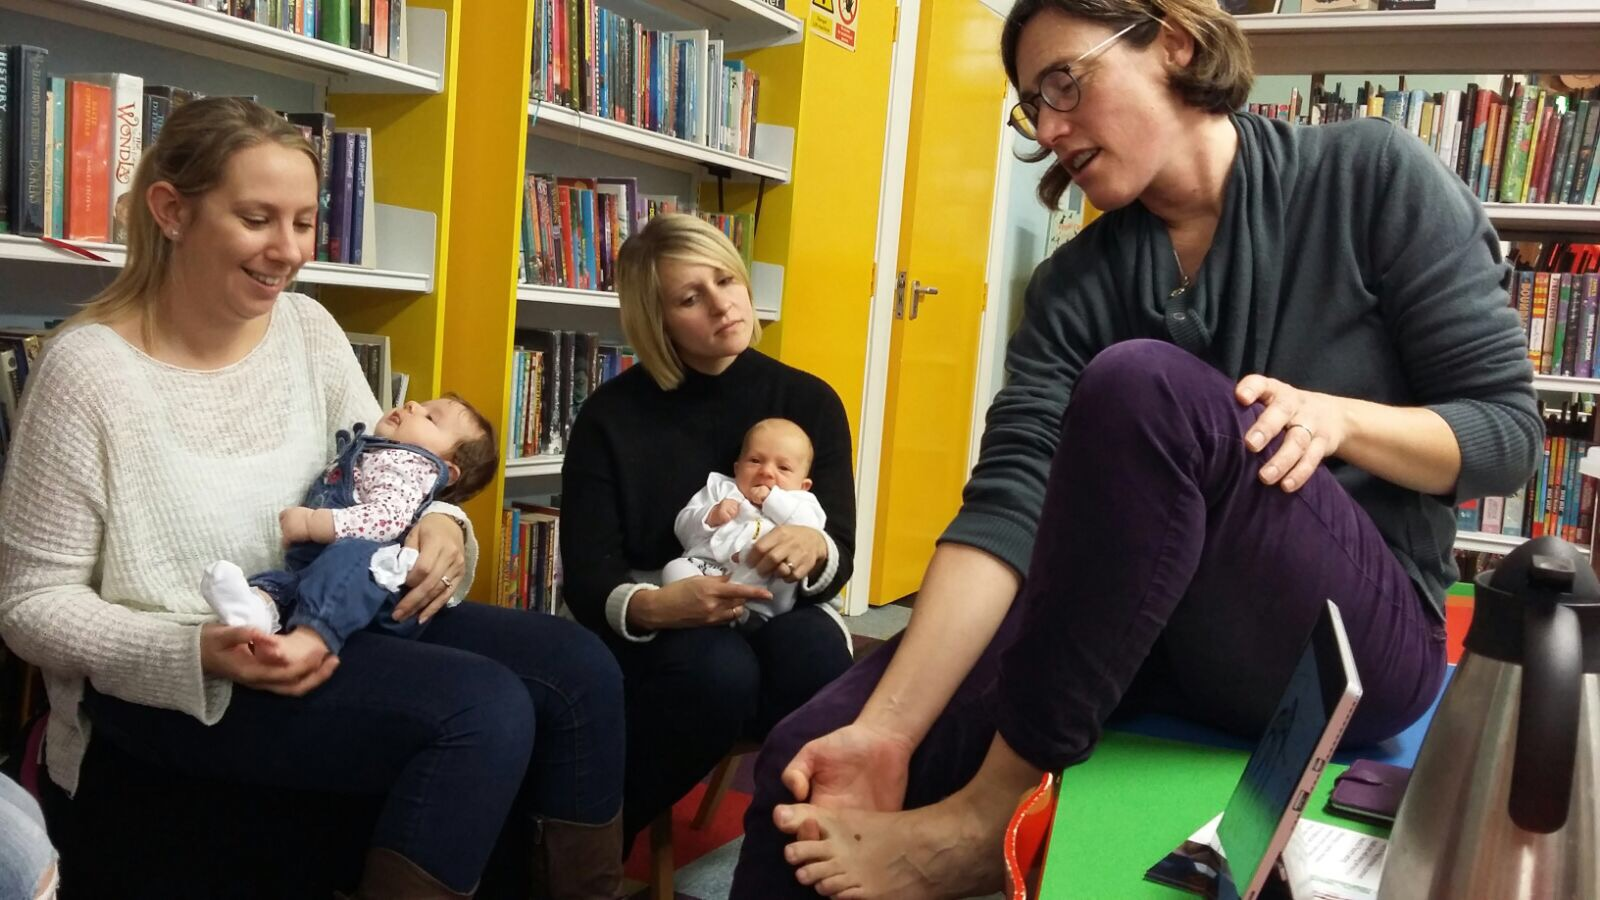 Mums at the Baby Latte meeting learning some reflexology tips to use with their babies